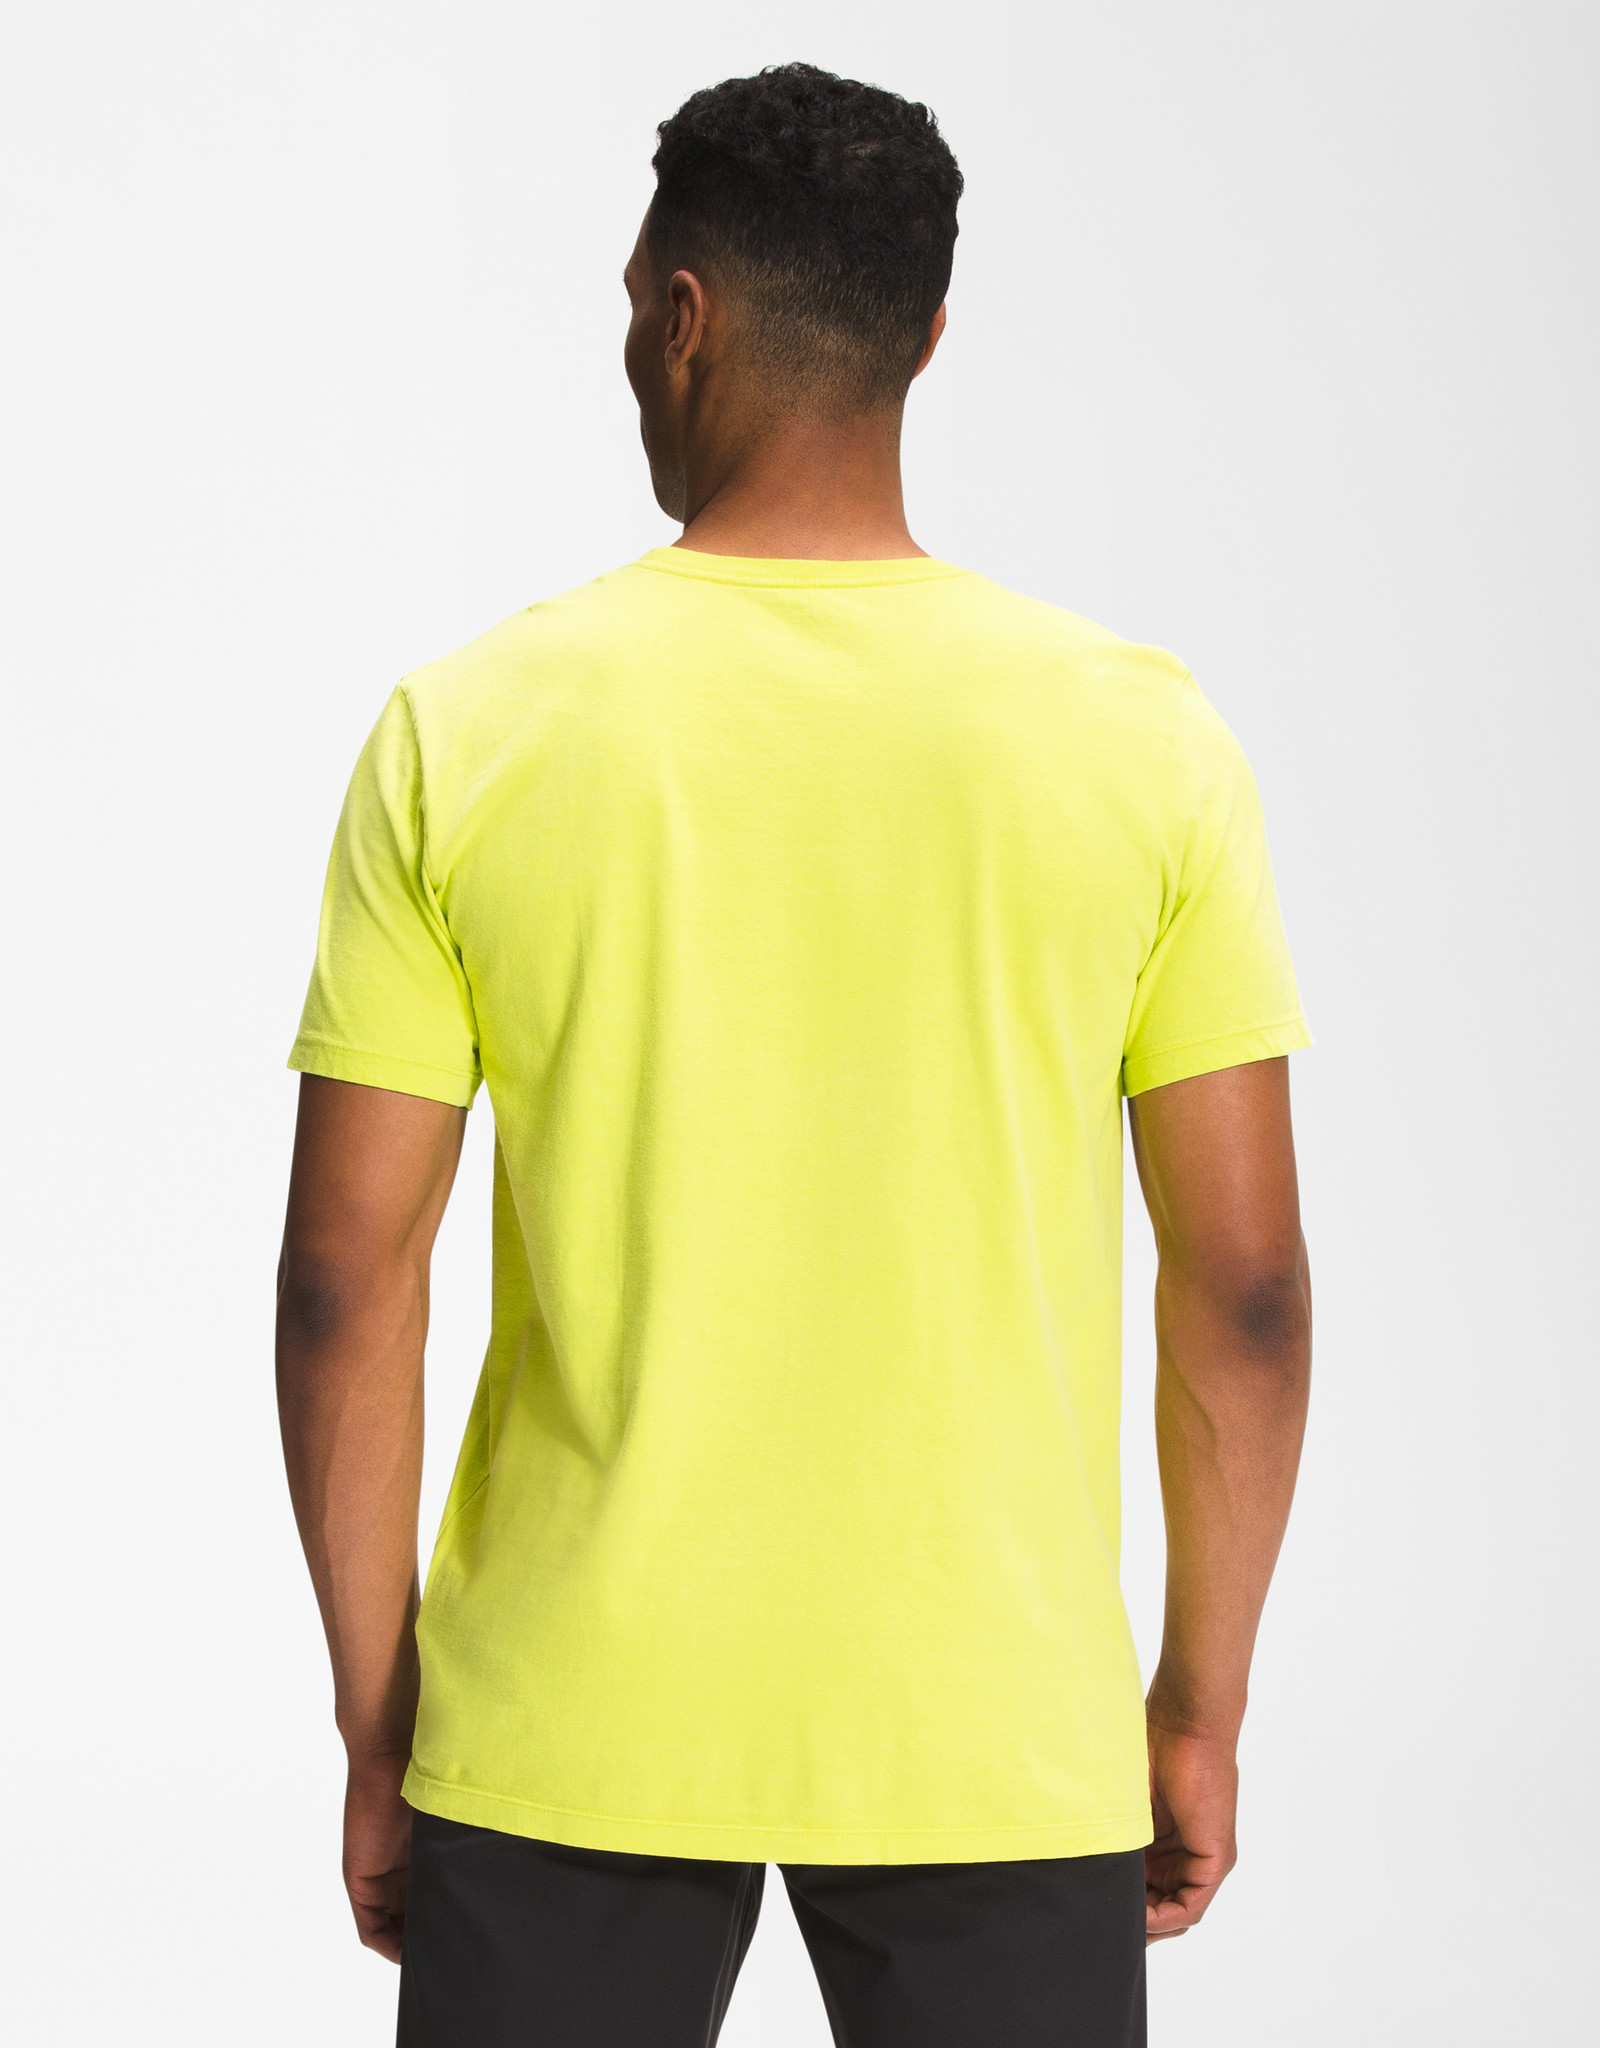 The North Face The North Face Men's S/S Natural Wonders Tee -S2021